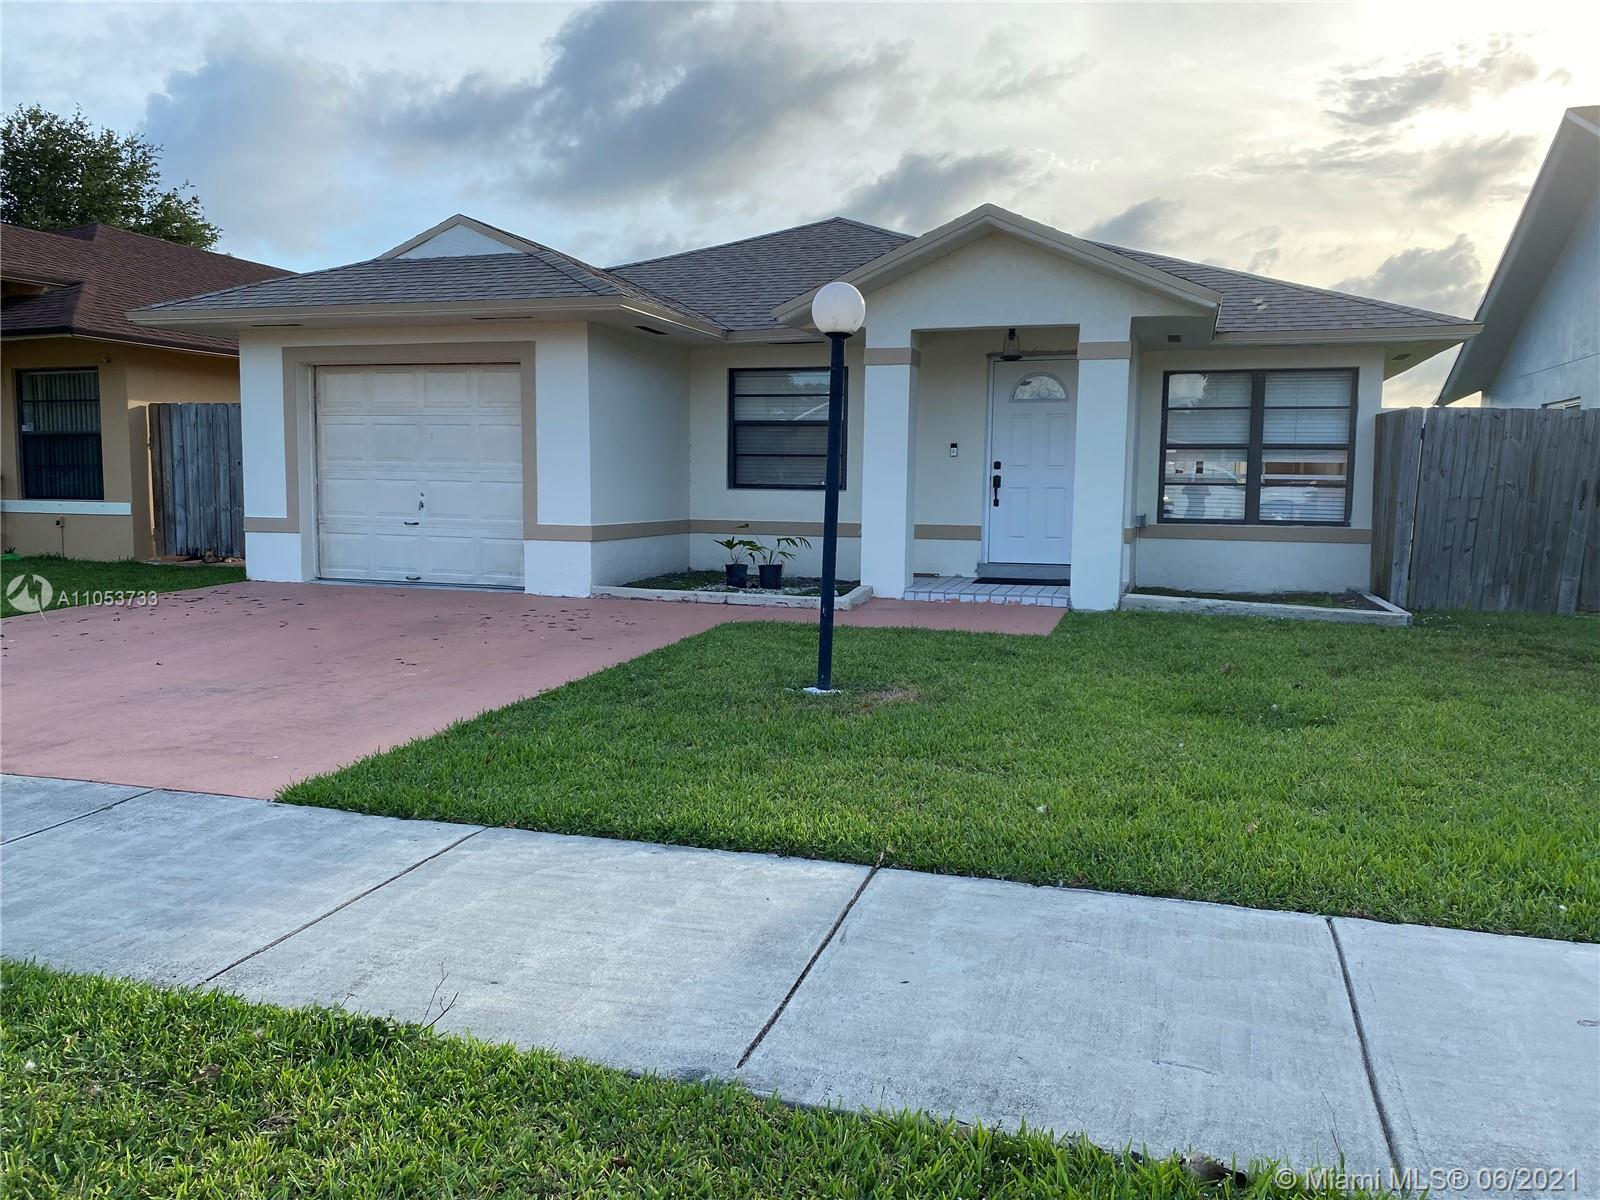 Beautiful Updated Cutler Bay Home with Canal view. This home features 3 bedrooms and 2 bathrooms with 1 car garage. The kitchen was remodeled in 2018, the appliances were installed along with a wine chiller. The Roof and A/C were installed in 2019, Electrical Panel was updated in 2020, these updates were done with permits. The bathrooms have been partially remodeled, per the owner, the shower in both bathrooms needs to be tiled for the City of Cutler Bay to close out the open/expired plumbing permit. The property is being sold in AS-IS Conditions. After closing, the new owners can have the luxury of choosing the color tiles to complete the showers in both bathrooms.